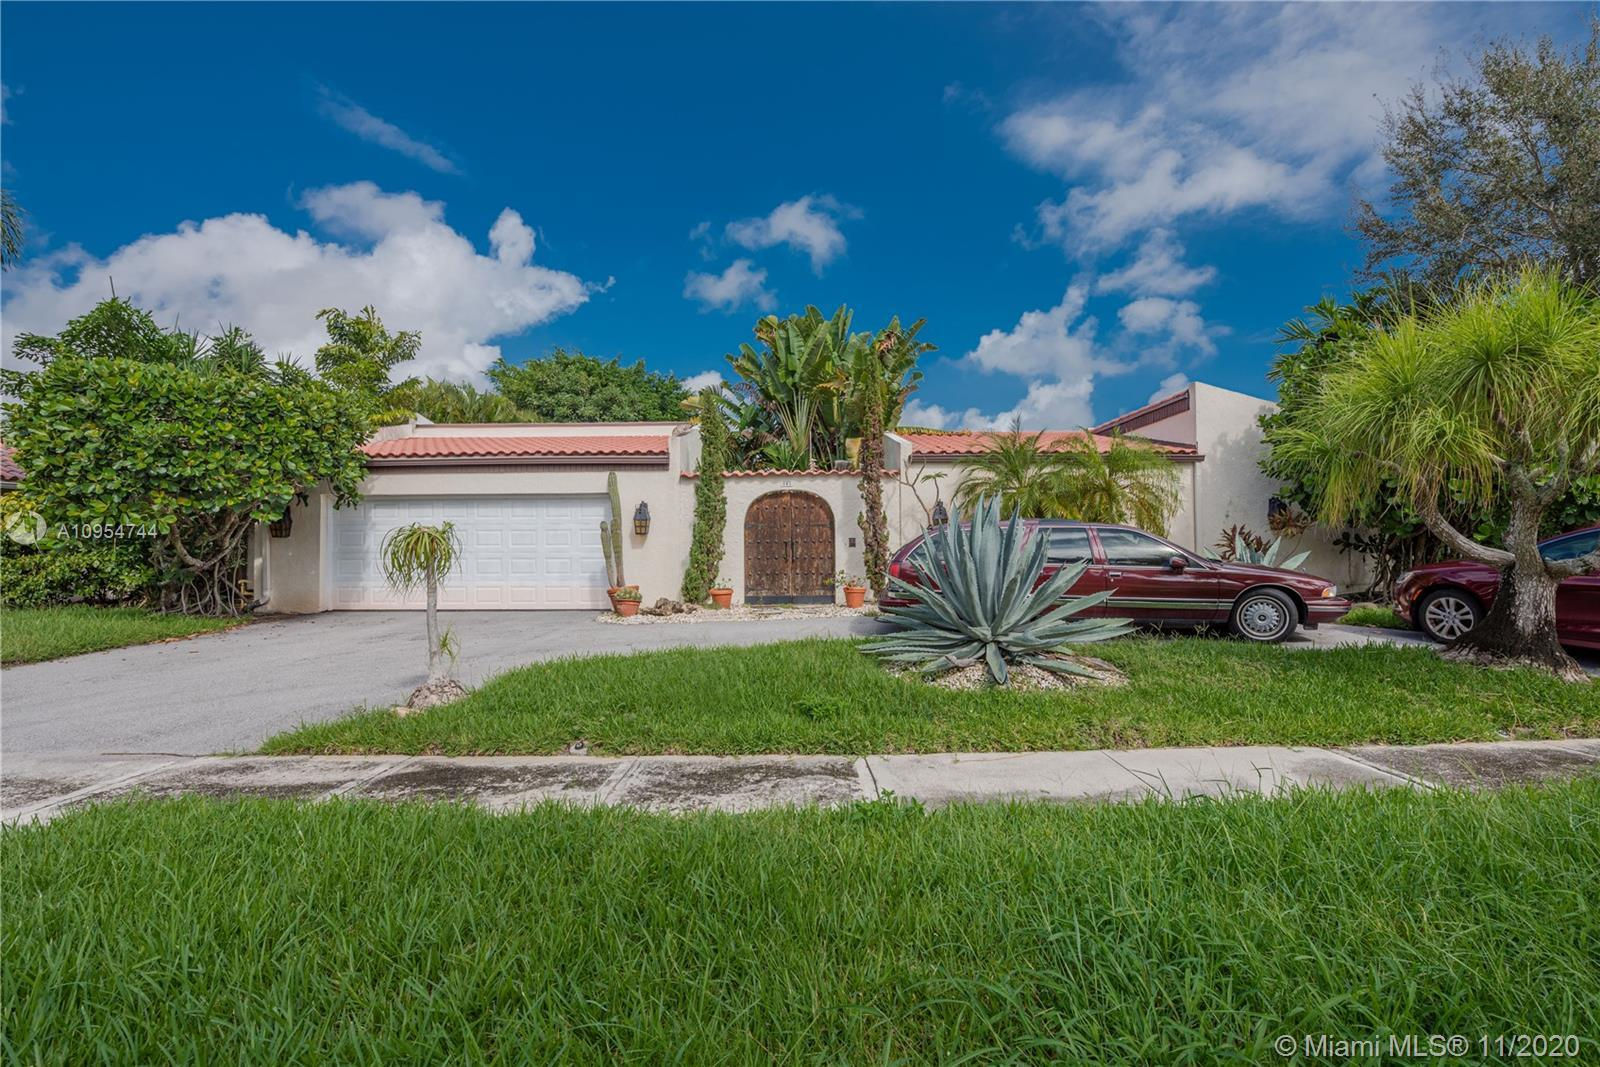 PALM BEACH FARMS! One of a kind spacious one story, 4 Bedroom 3 Bathroom single family house with in